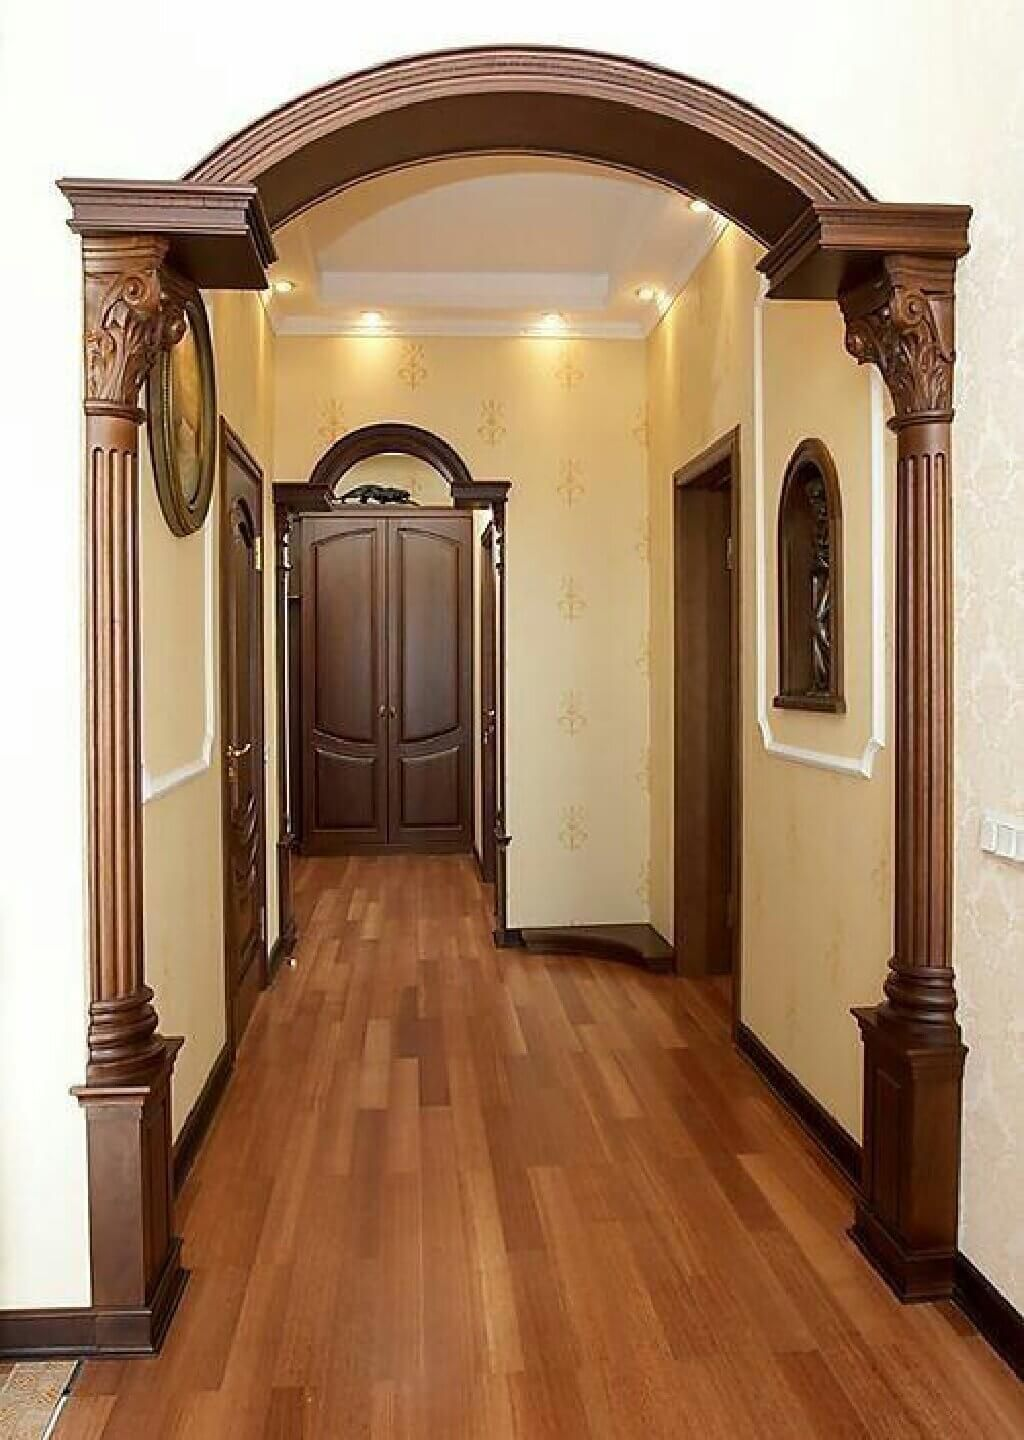 Top 30 Ideas To Decorate With Wooden Arches Your House Engineering Discoveries House Arch Design House Design Door Design Living room arch accessories